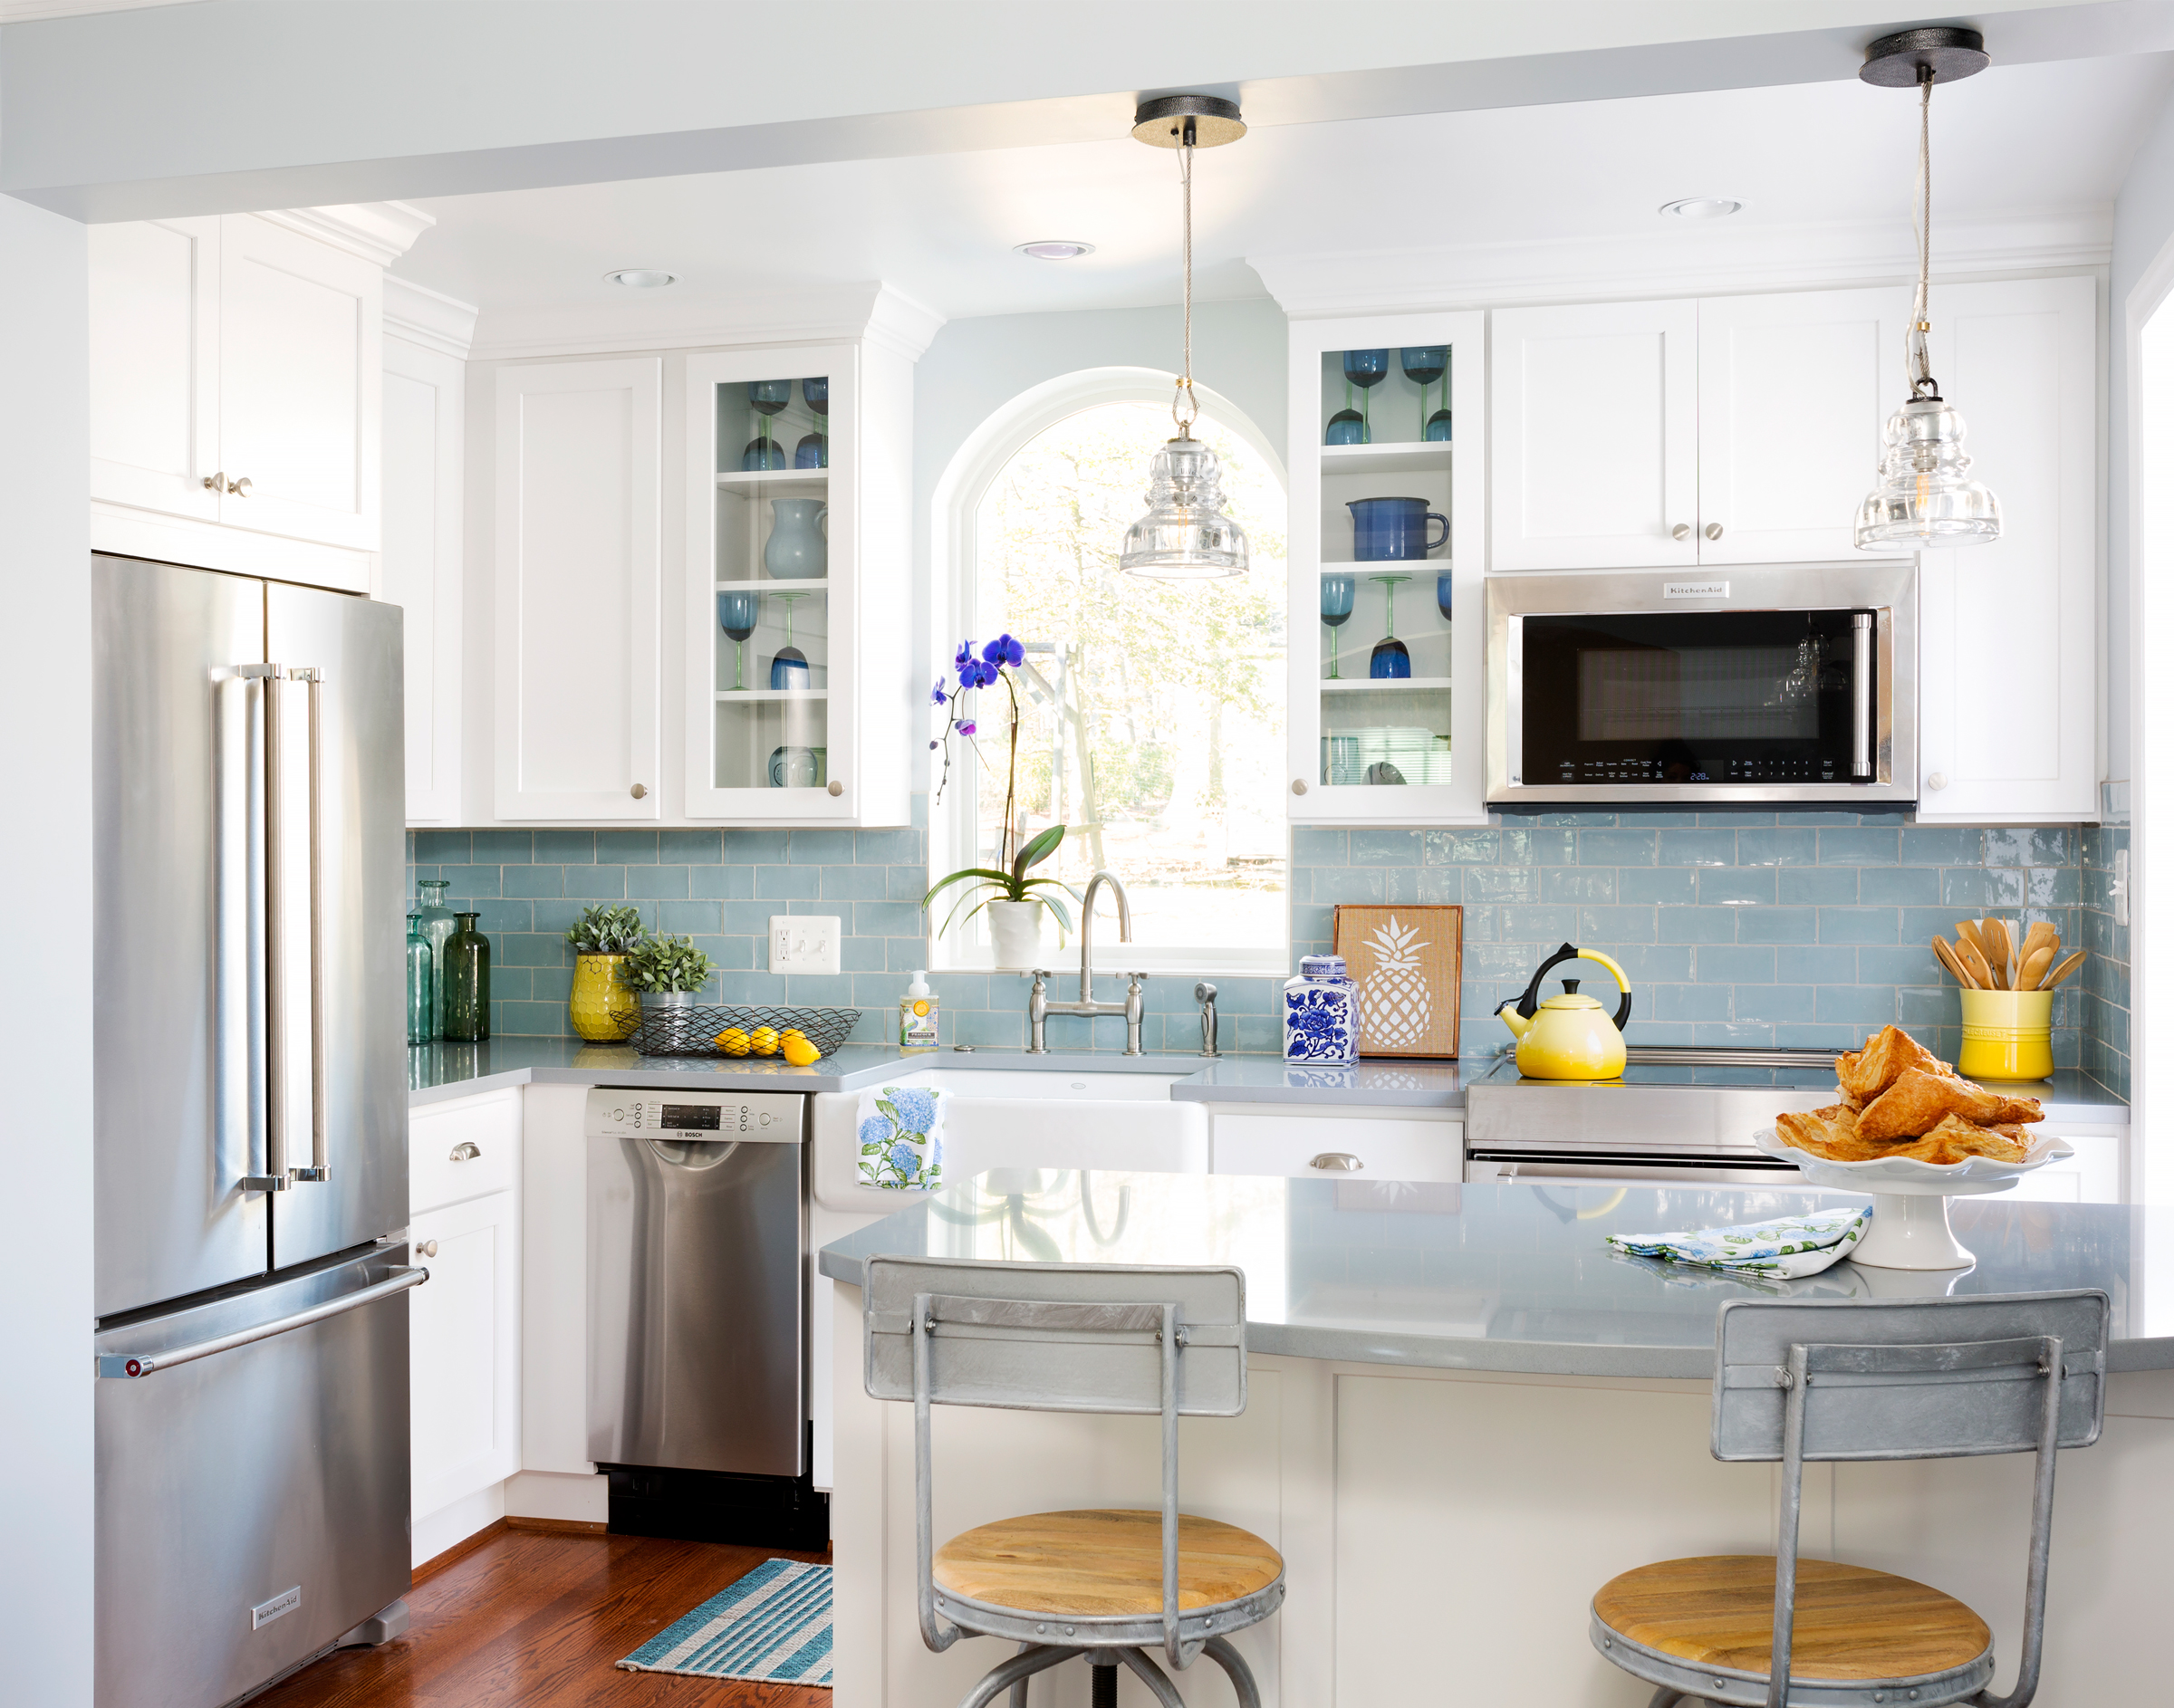 Small Kitchen Ideas to Maximize Your Space & More! - Crystal ...